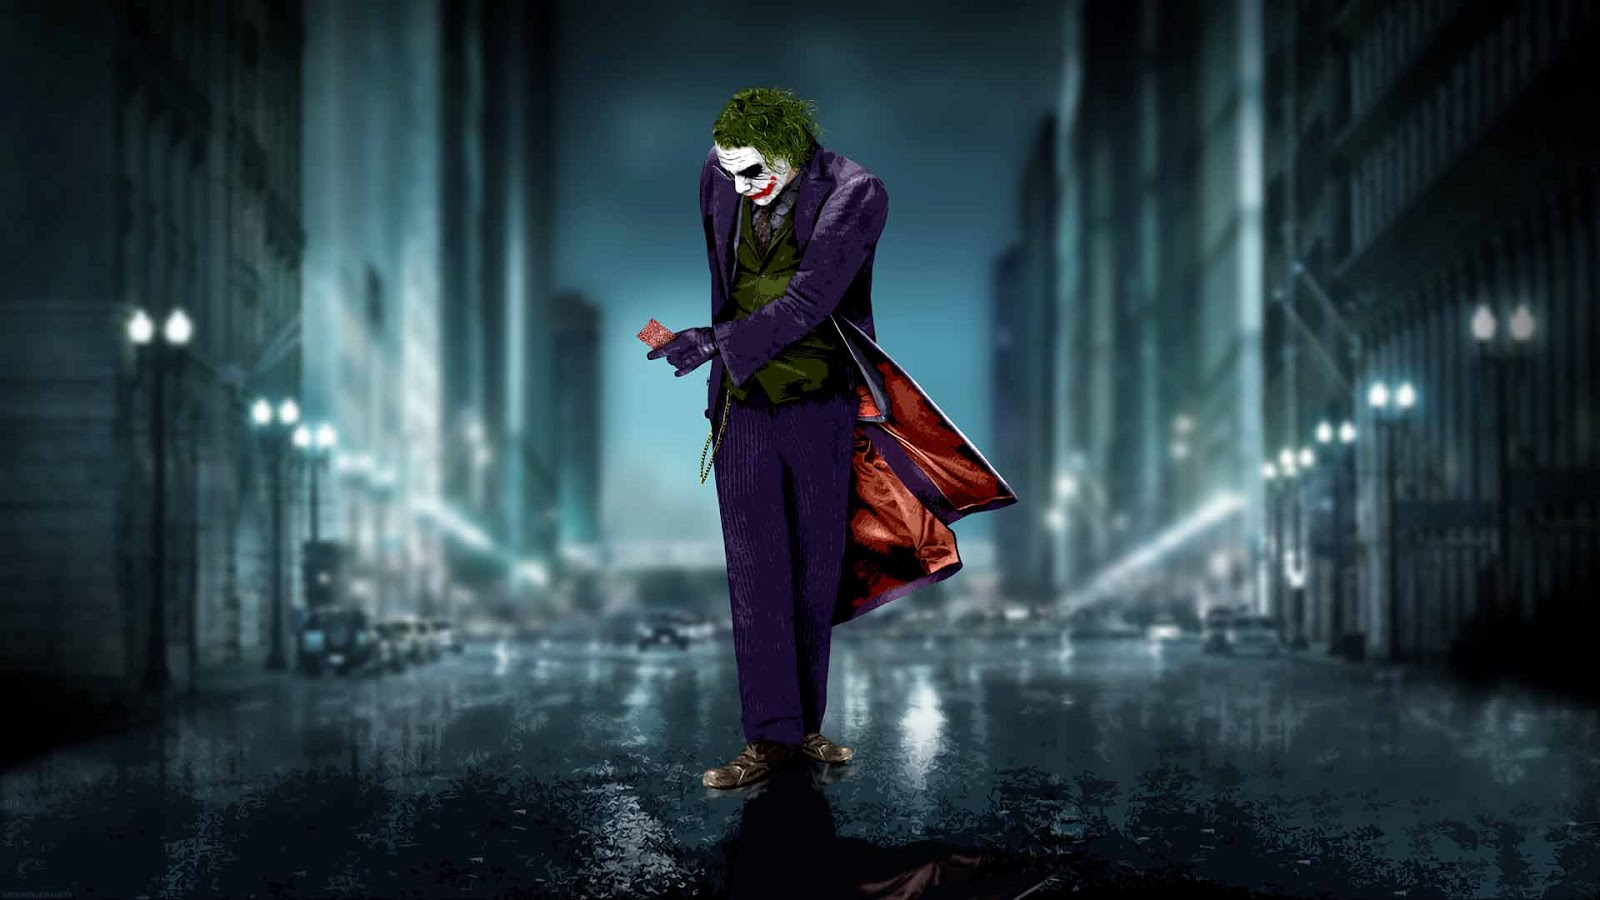 Joker HD Wallpapers Hd Laptops